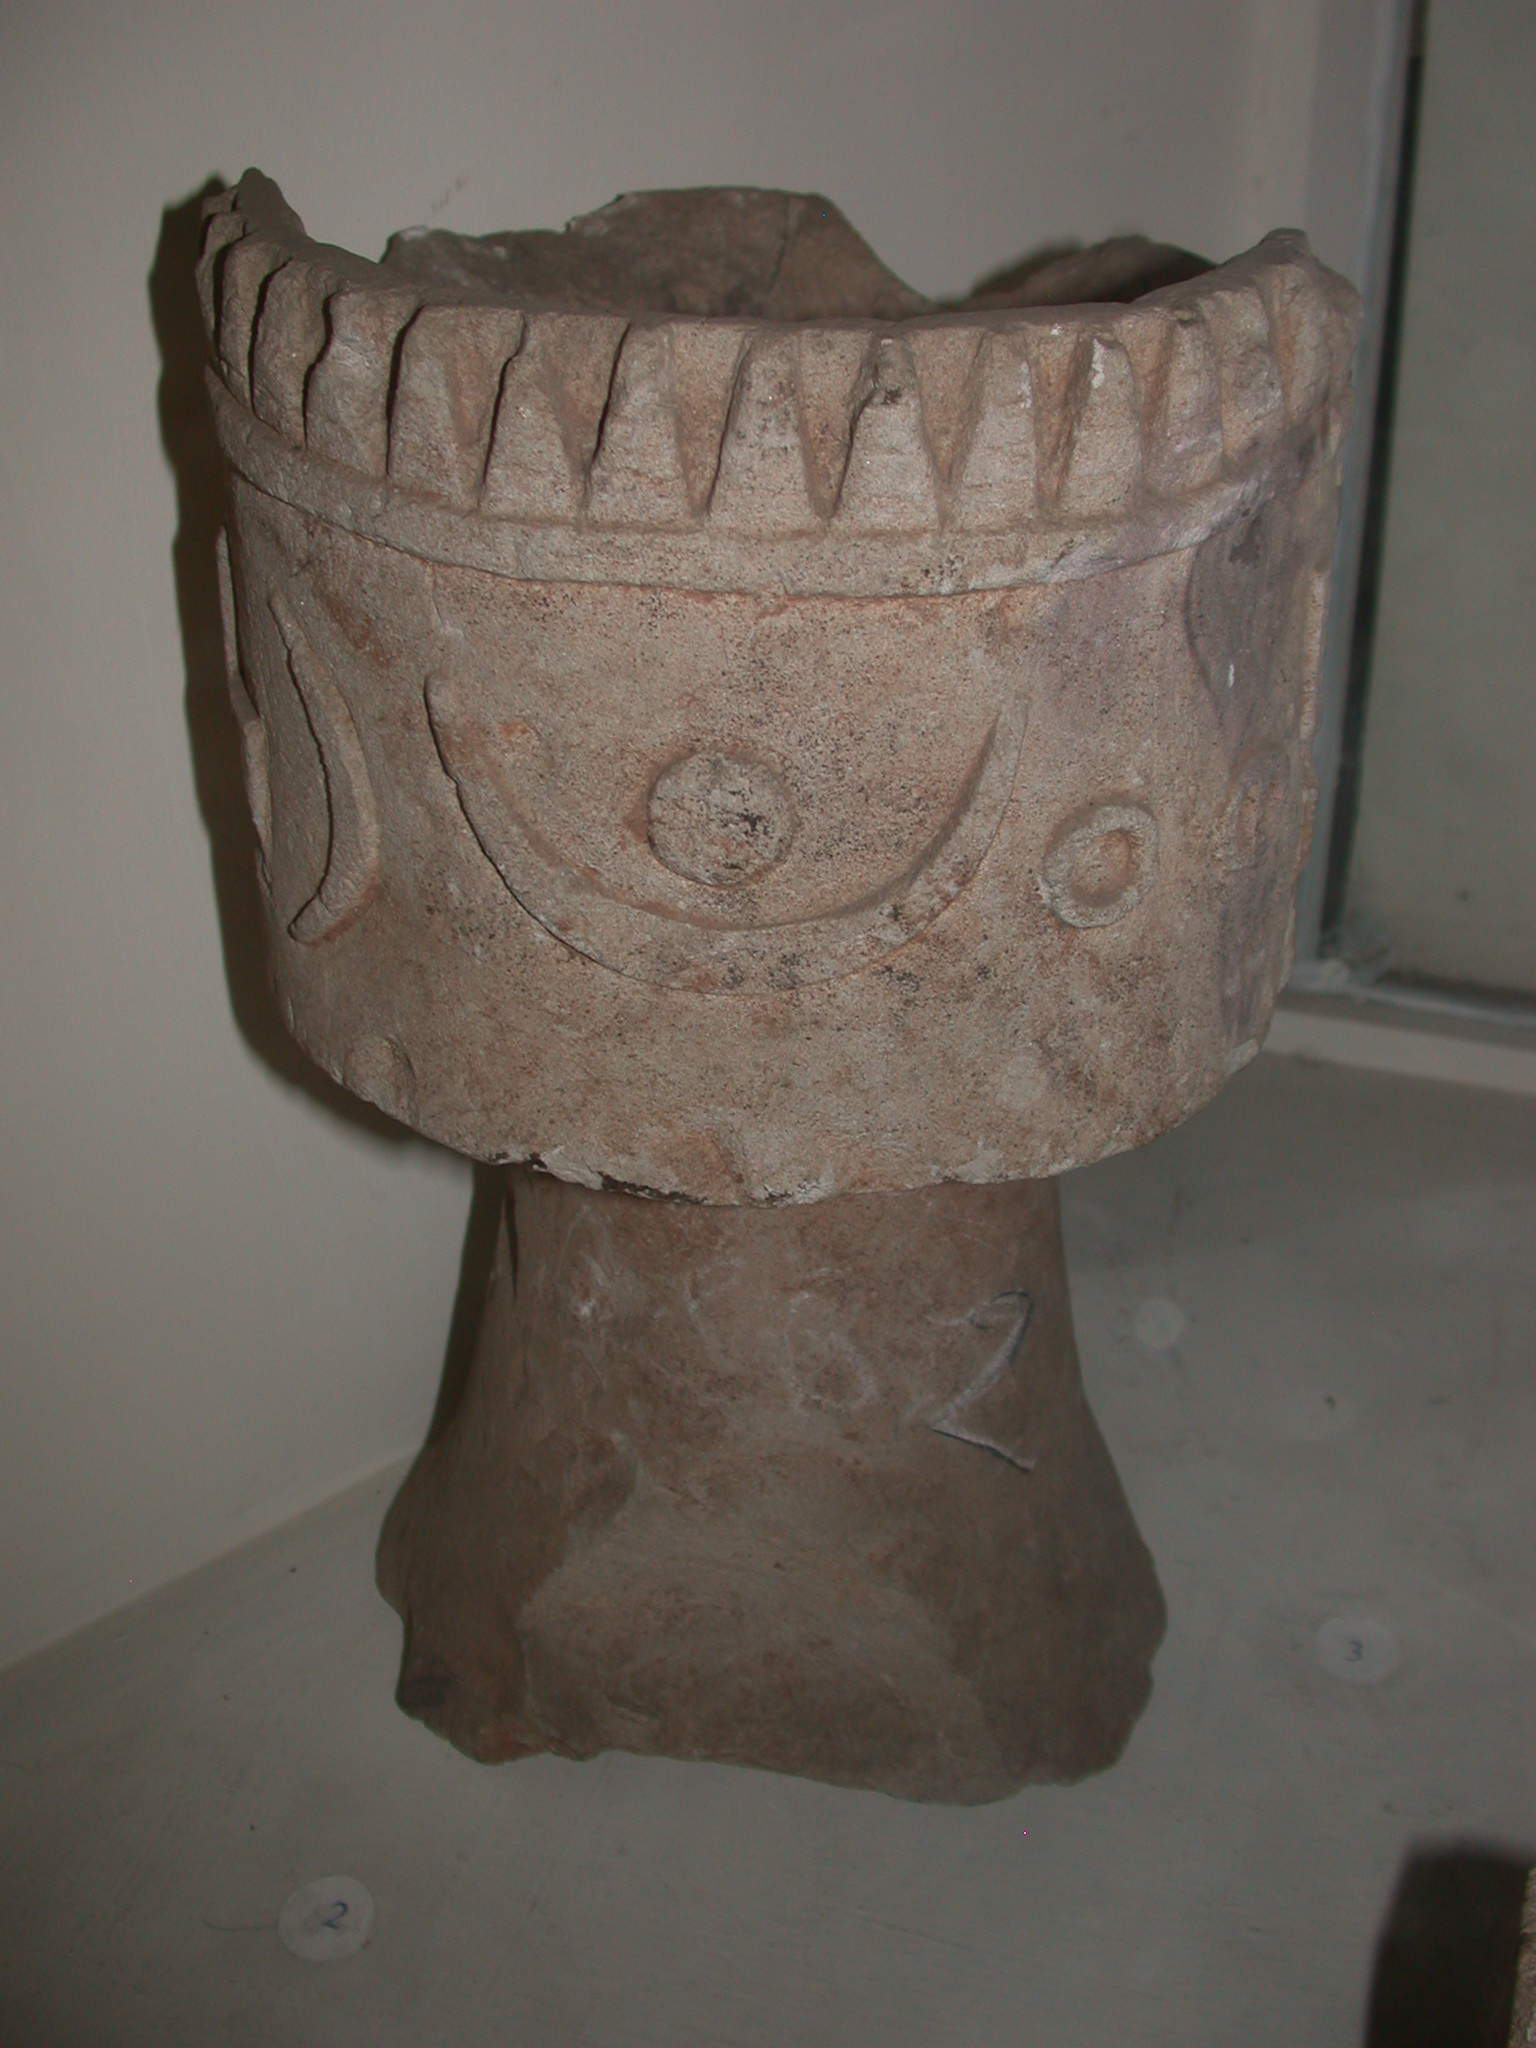 Small Alabaster Altar From End of 1st Millenium BCE in Addi-Galamo, Tigrai, Now Located at National Museum, Addis Ababa, Ethiopia